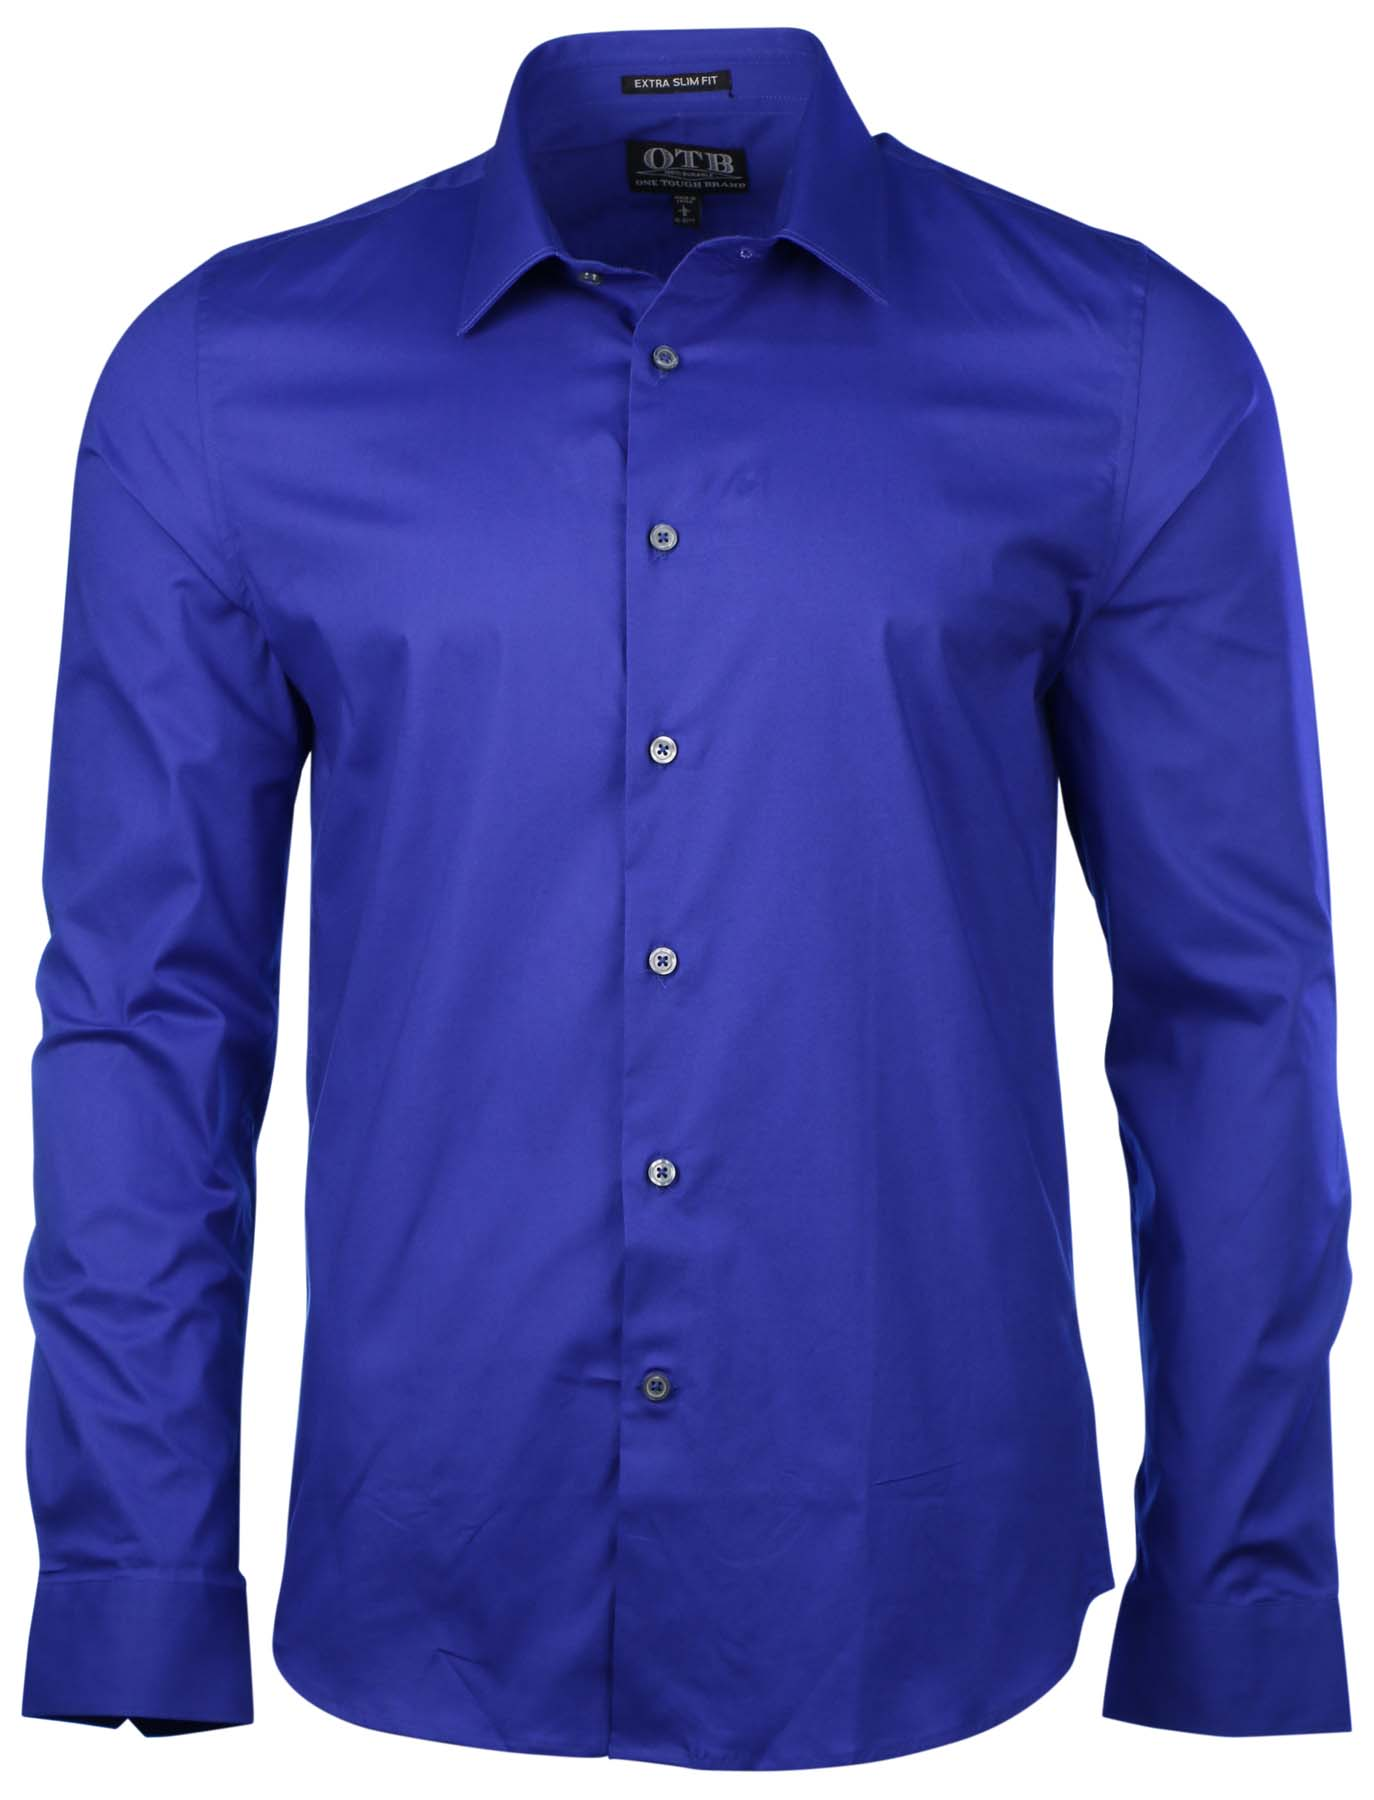 Mens slim fit button down shirts artee shirt for Men slim fit shirts